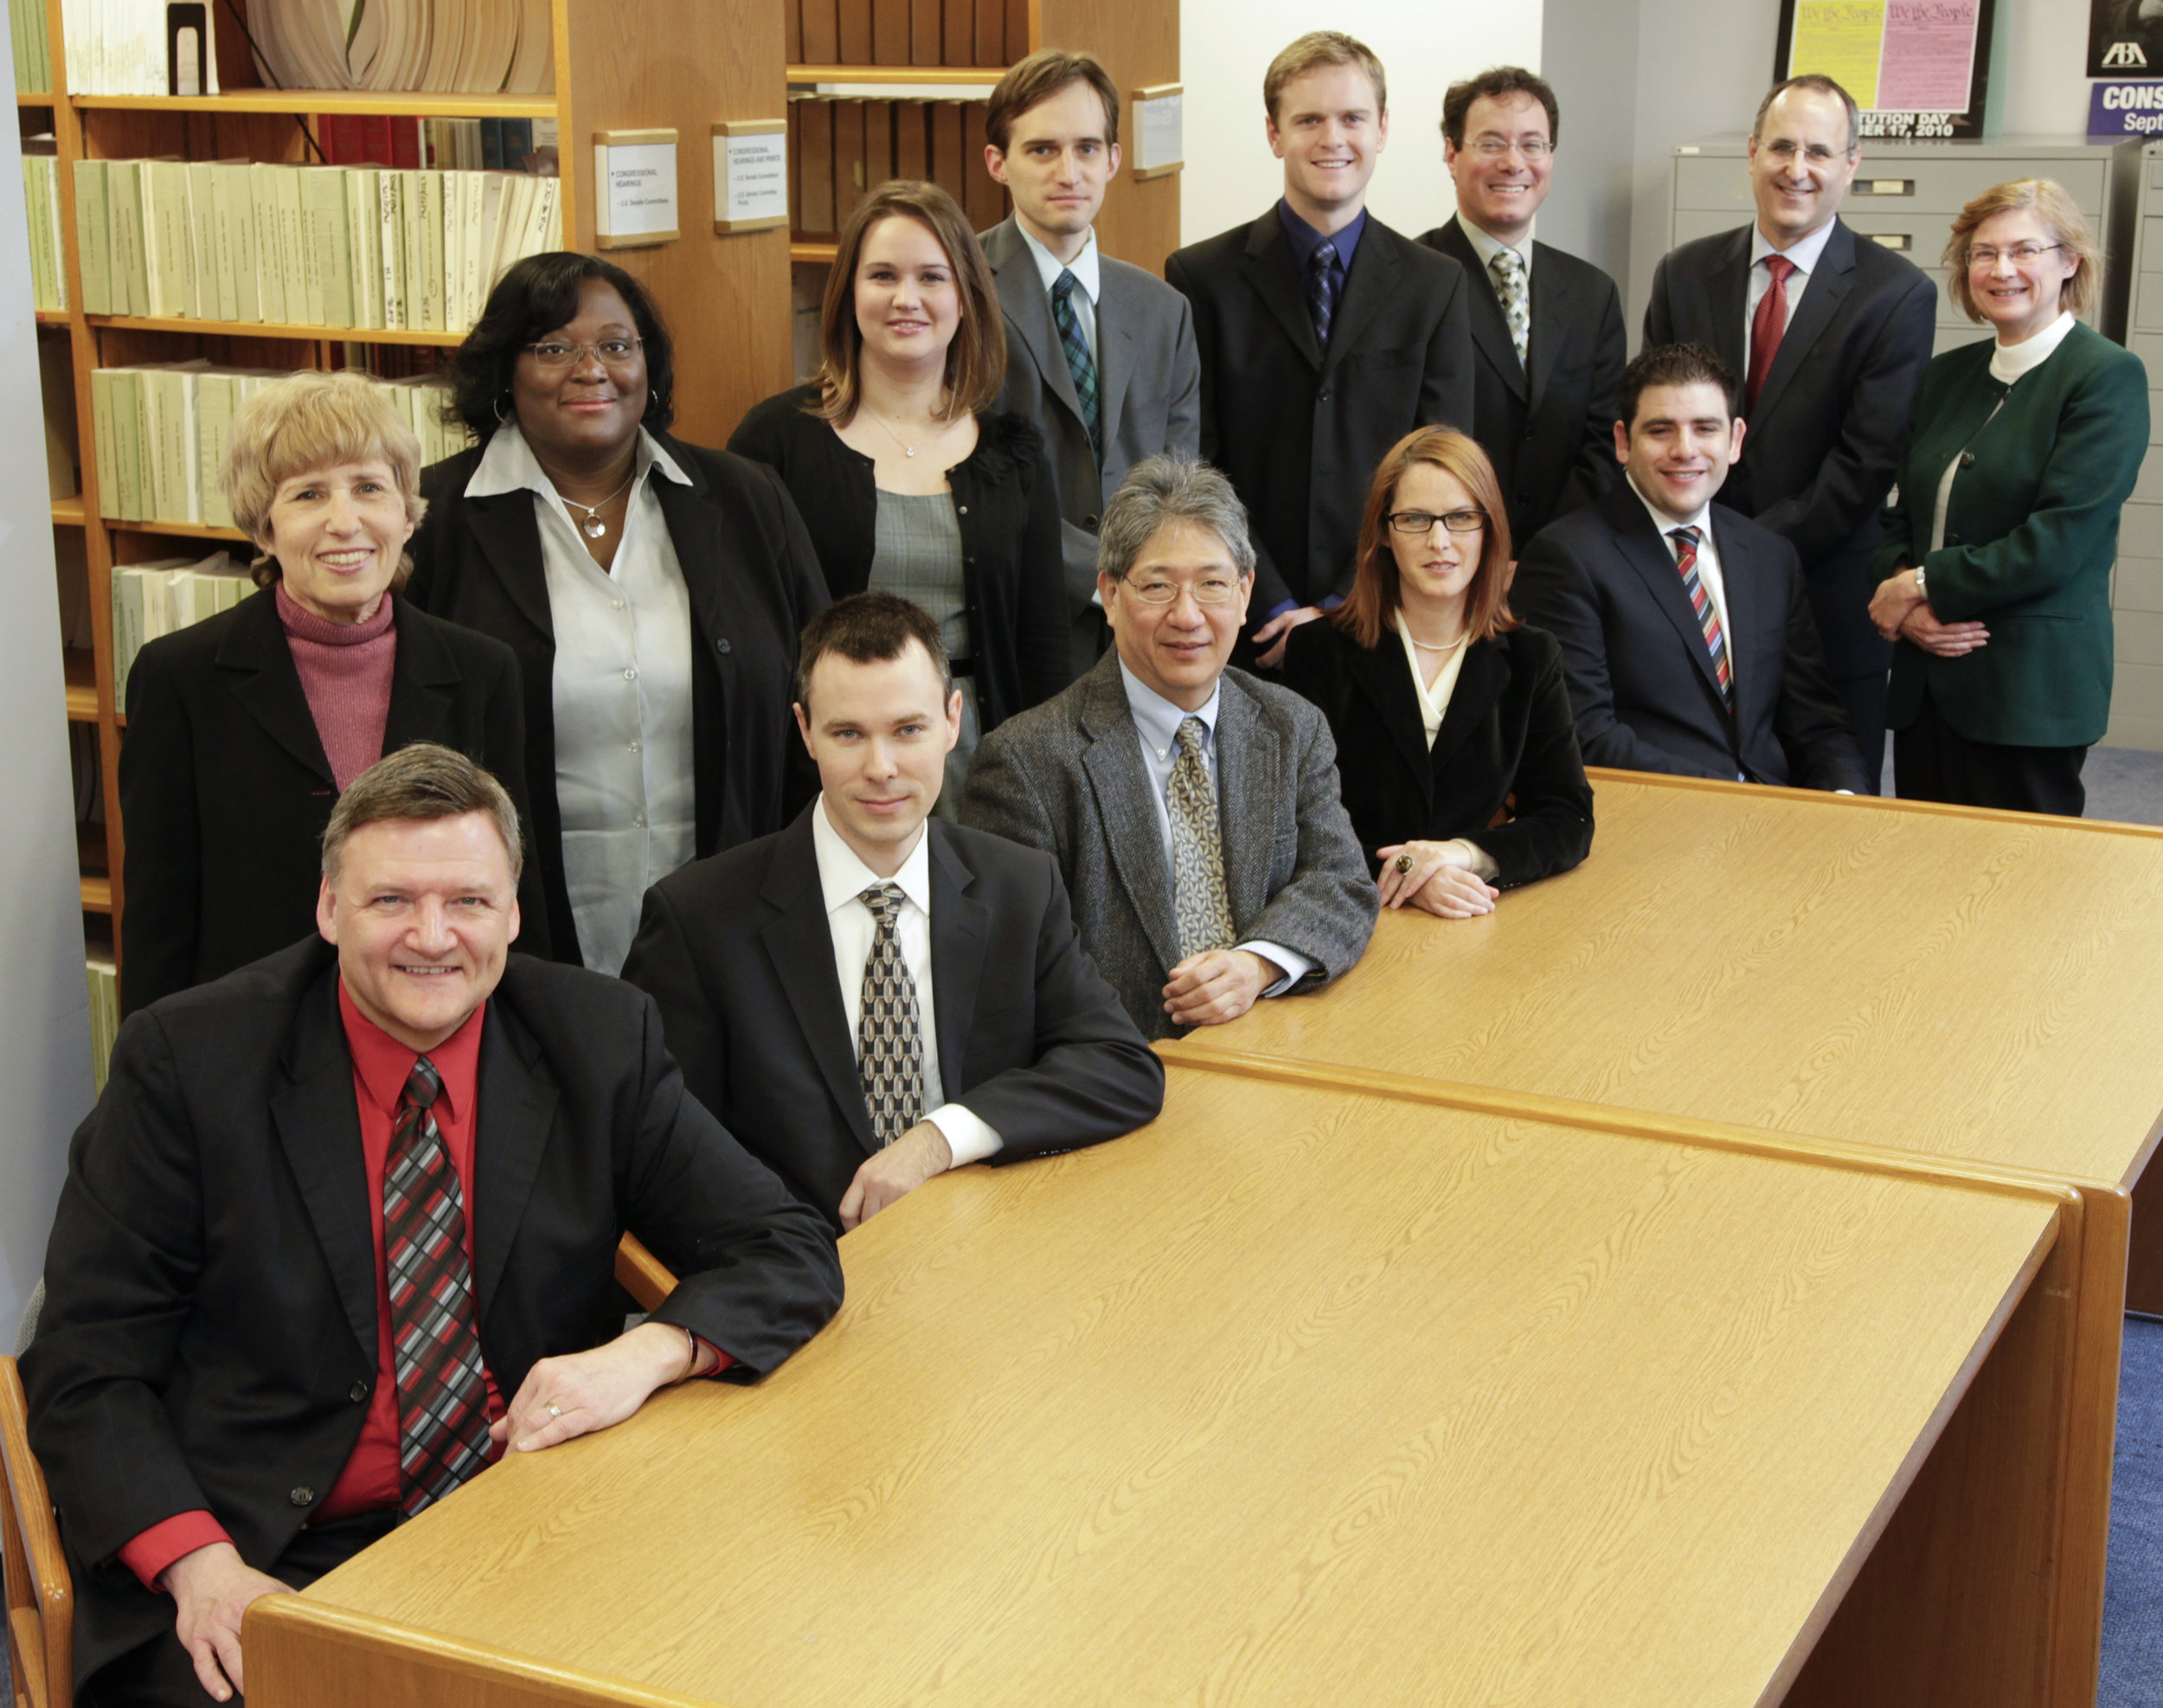 2011 01 Law Library Group Photo 2.jpg